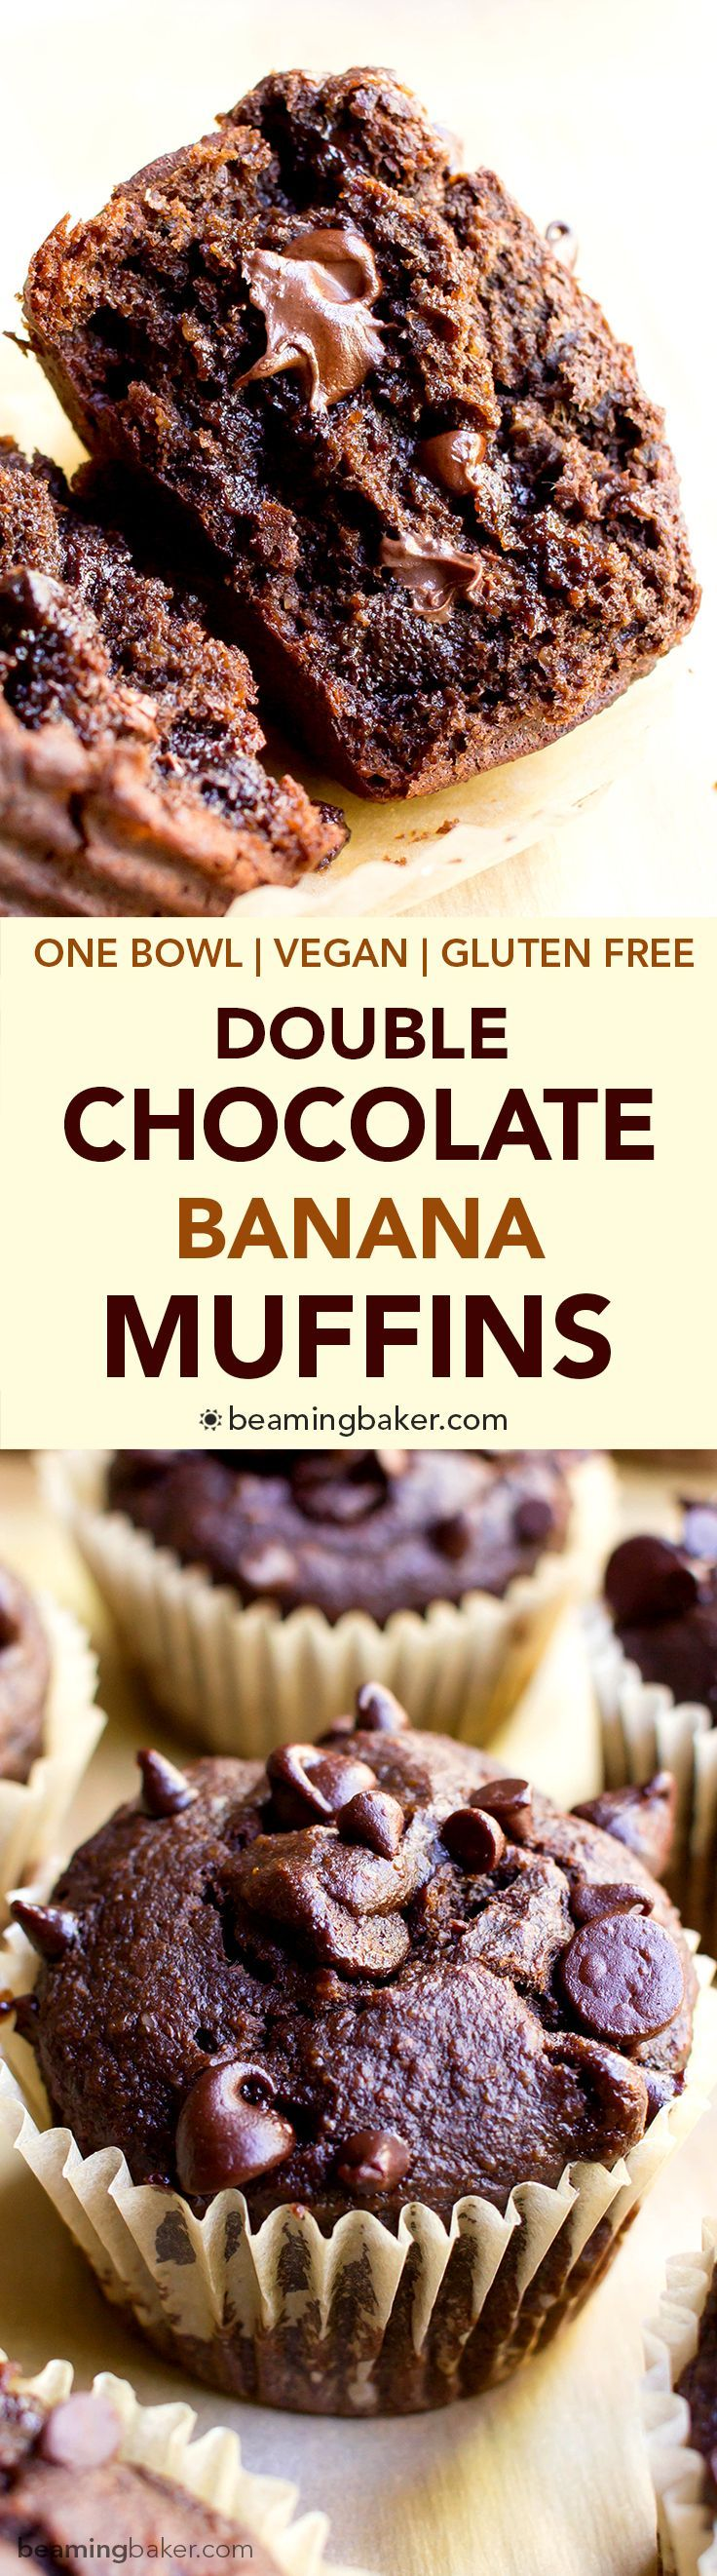 One Bowl Double Chocolate Banana Muffins